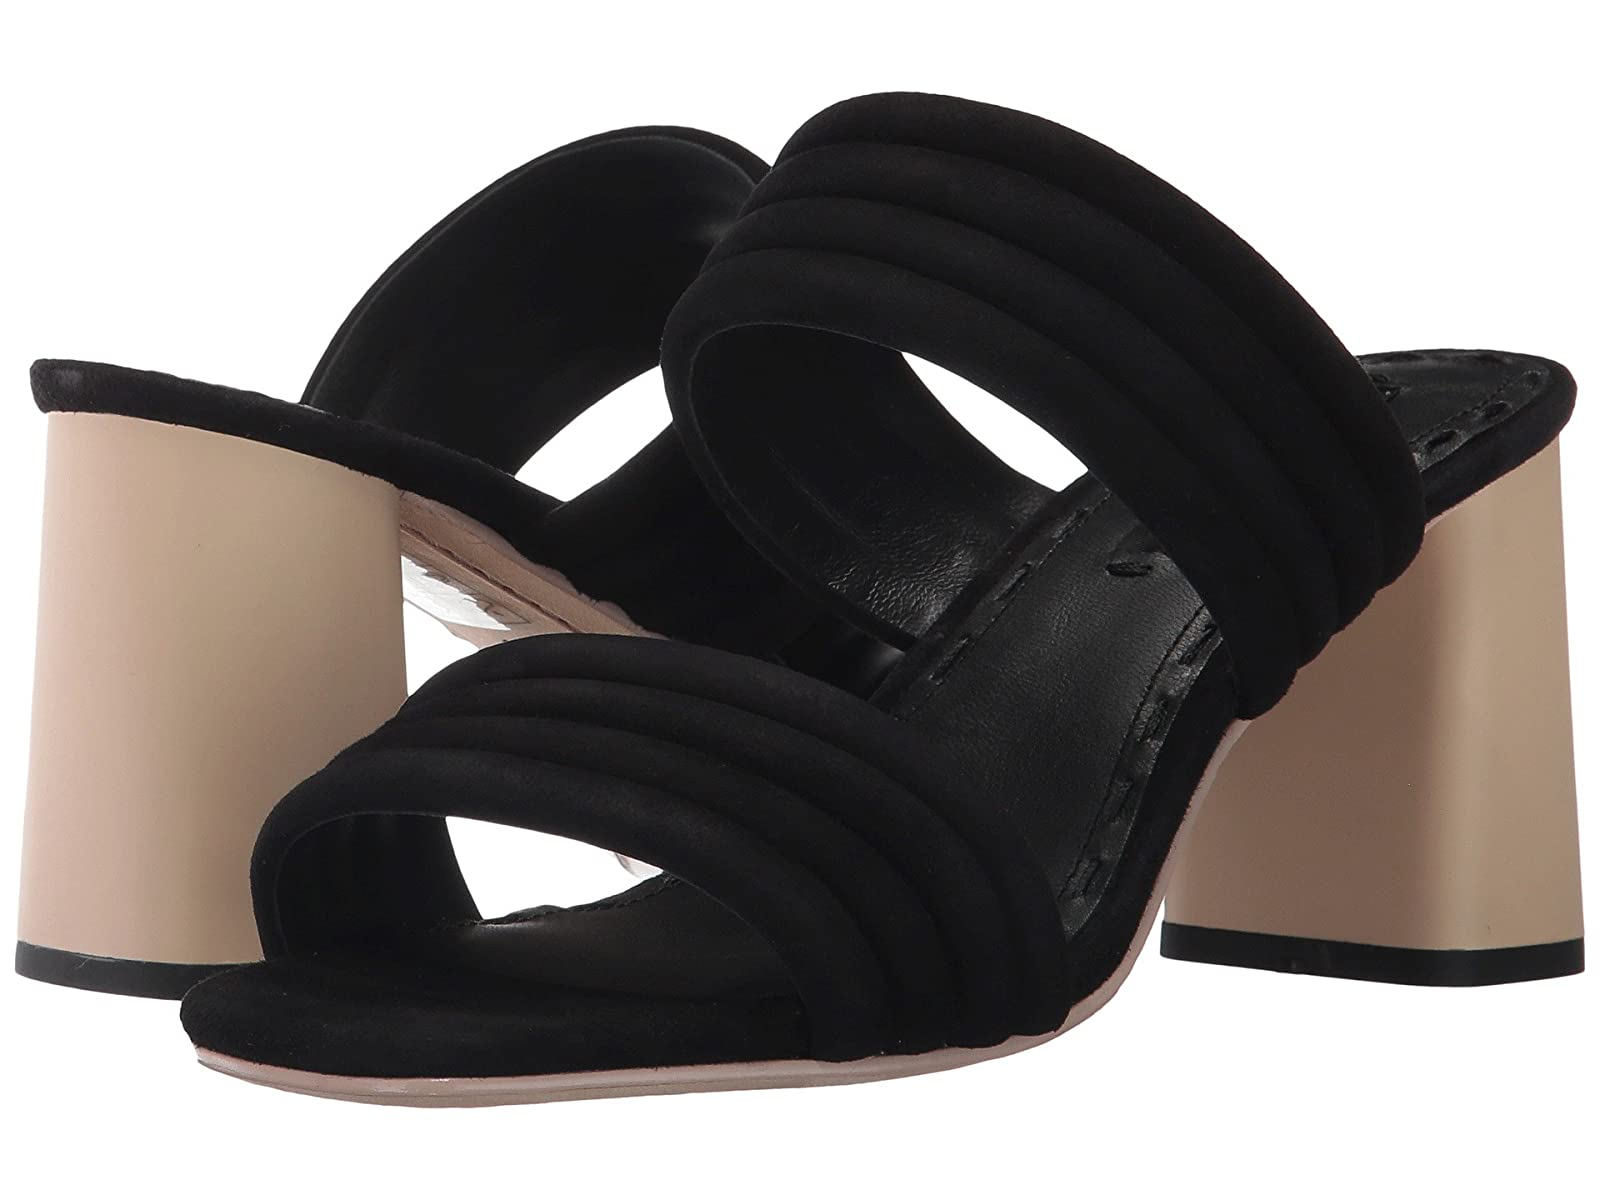 Alice + Olivia ColbyCheap and distinctive eye-catching shoes